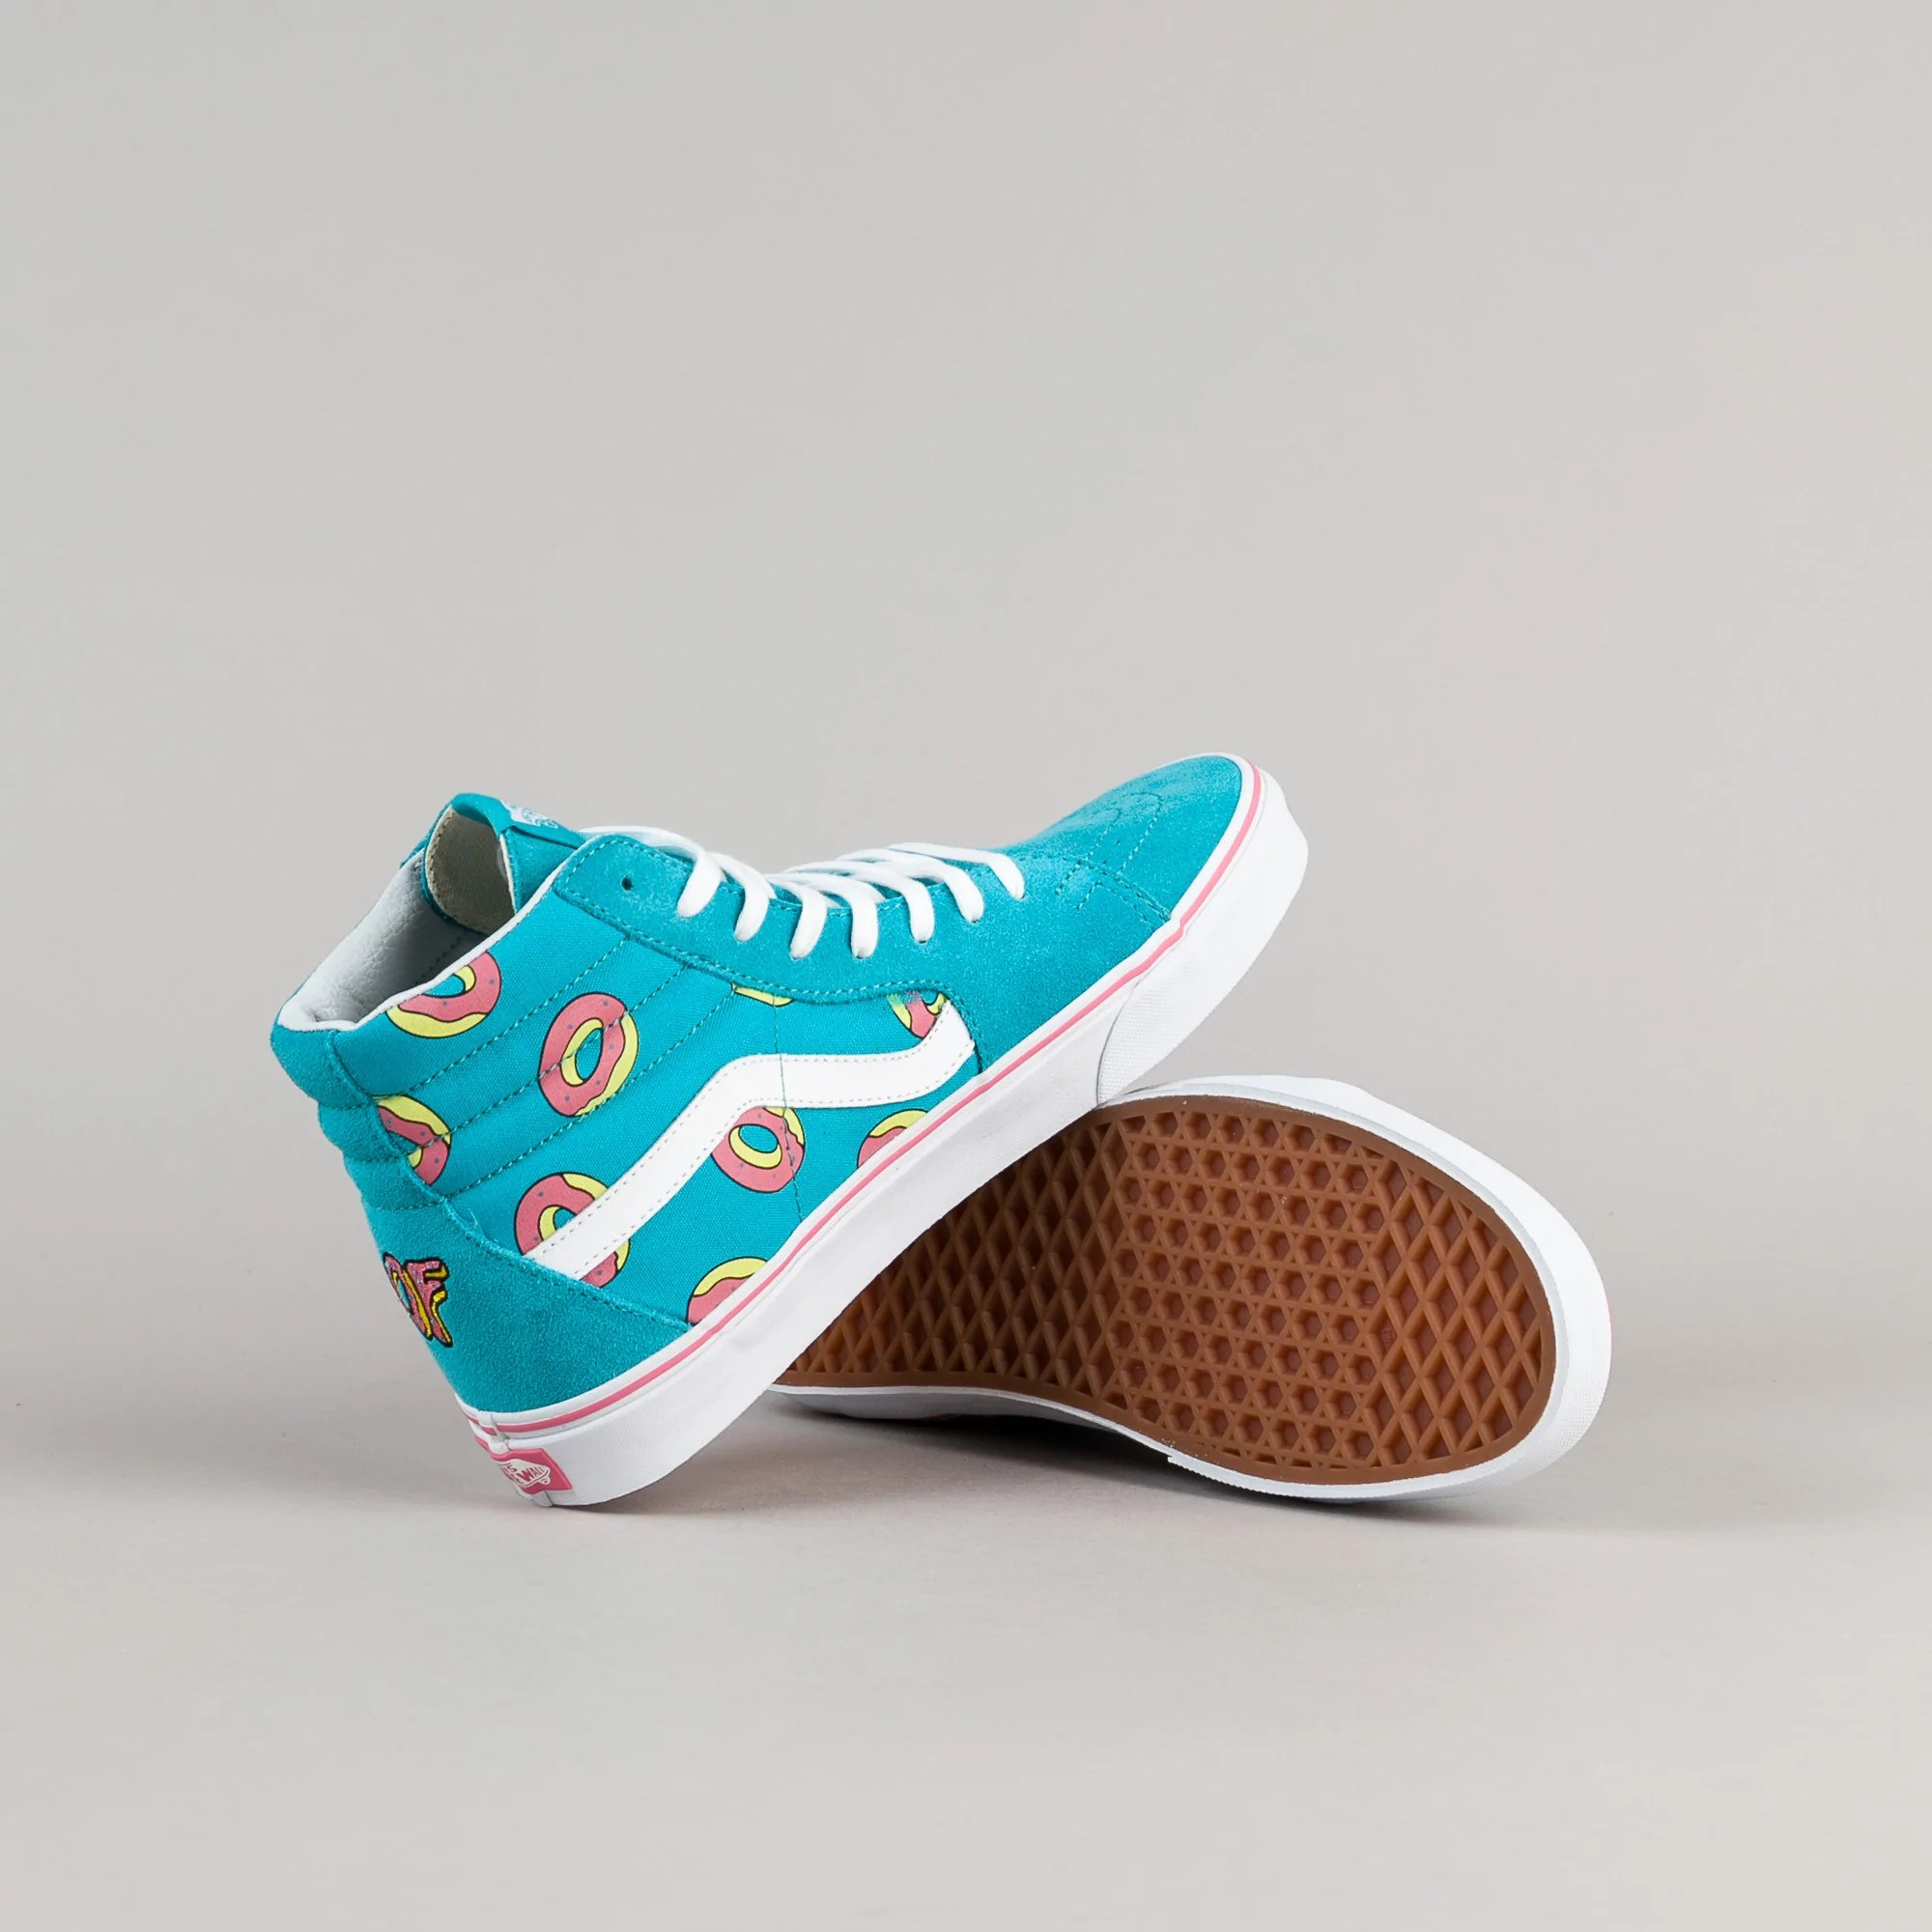 333429d99ad9 20+ Donut Vans High Pictures and Ideas on Meta Networks